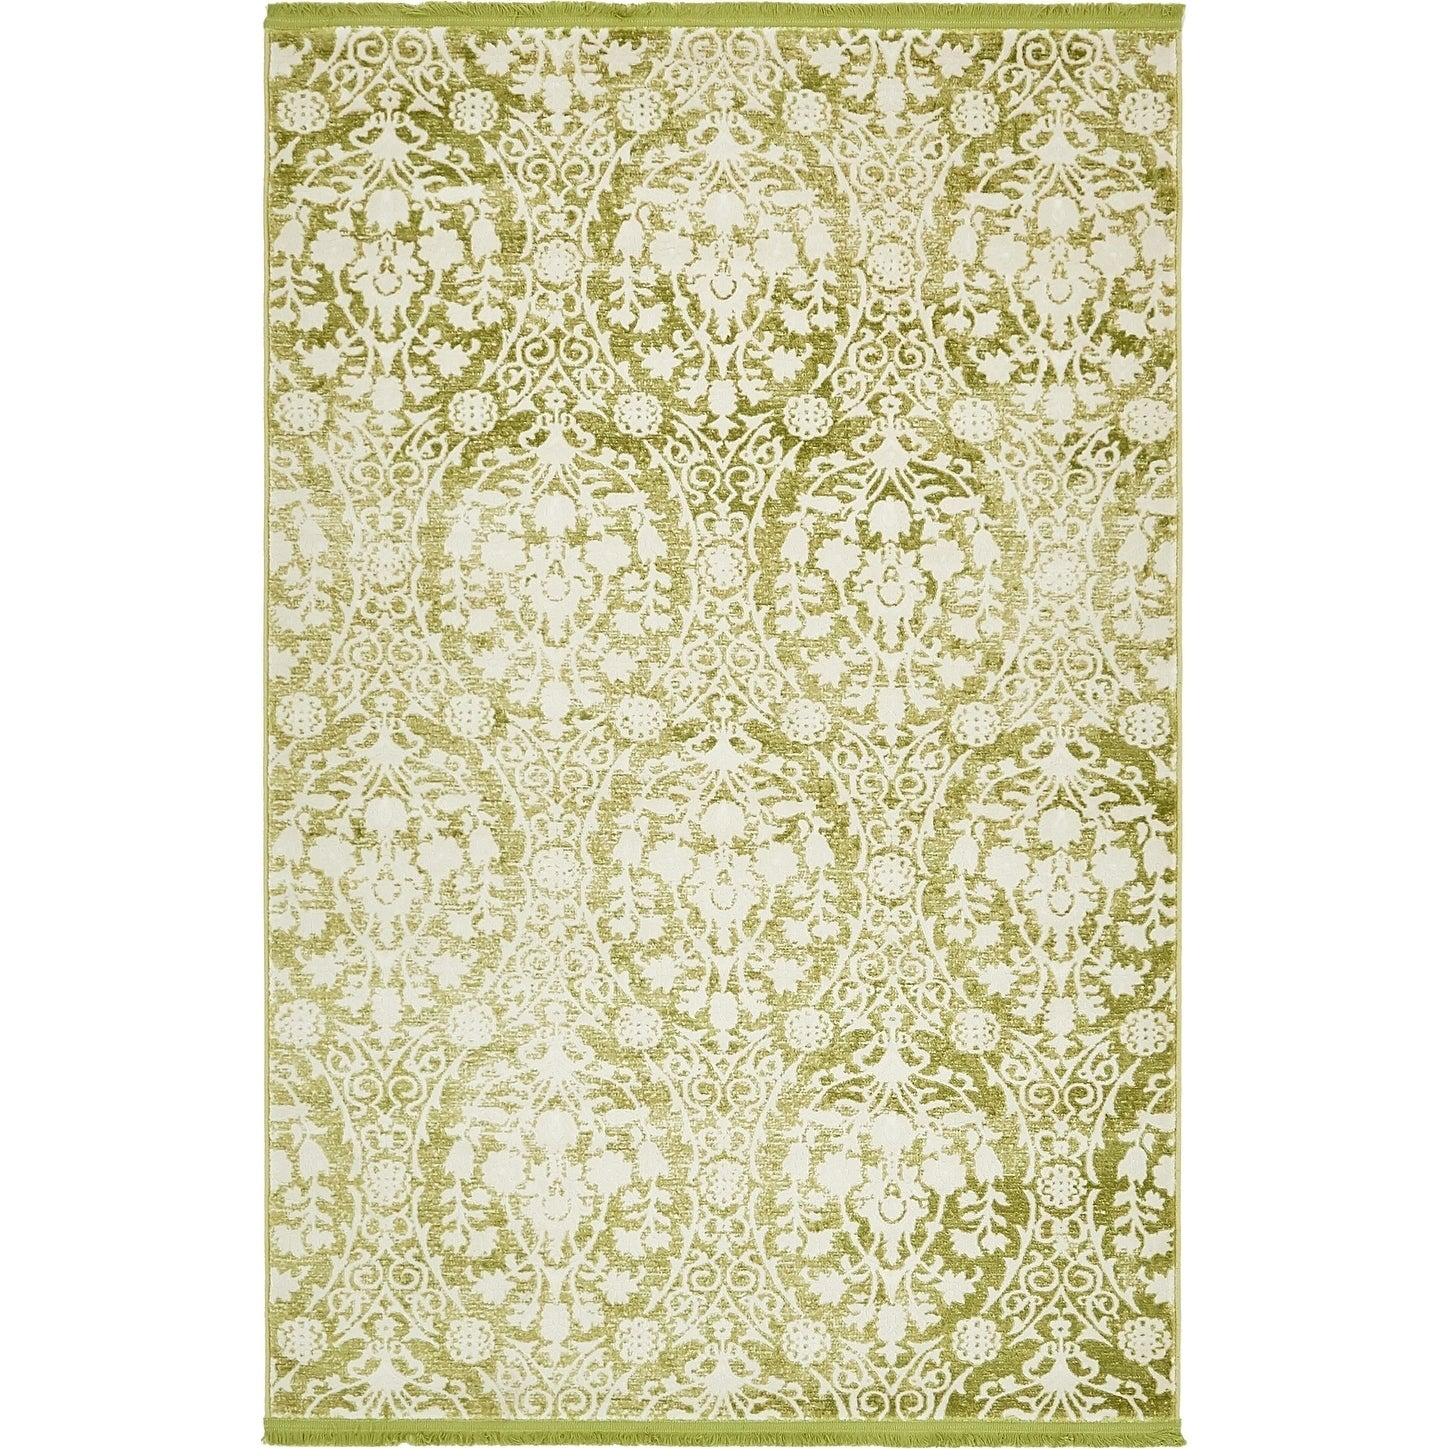 Arcadia New Vintage Abstract Light Green/Off-white Fabric...